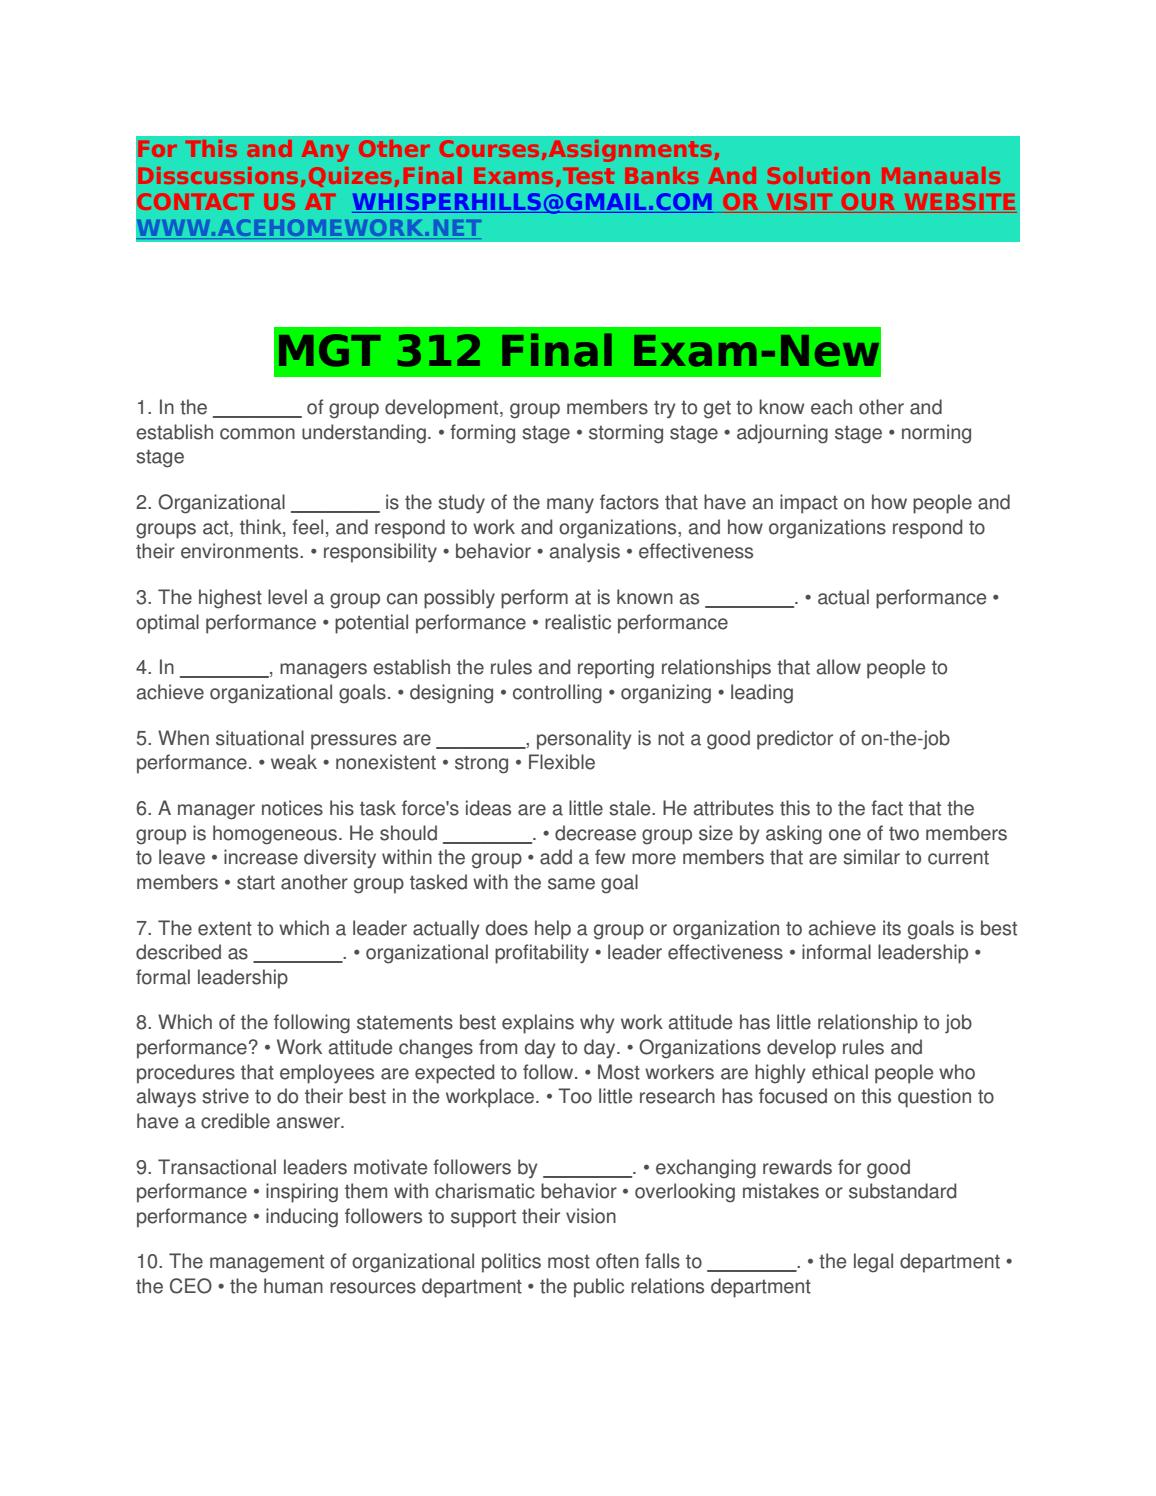 Mgt 312 final exam new by sanamcandy - issuu